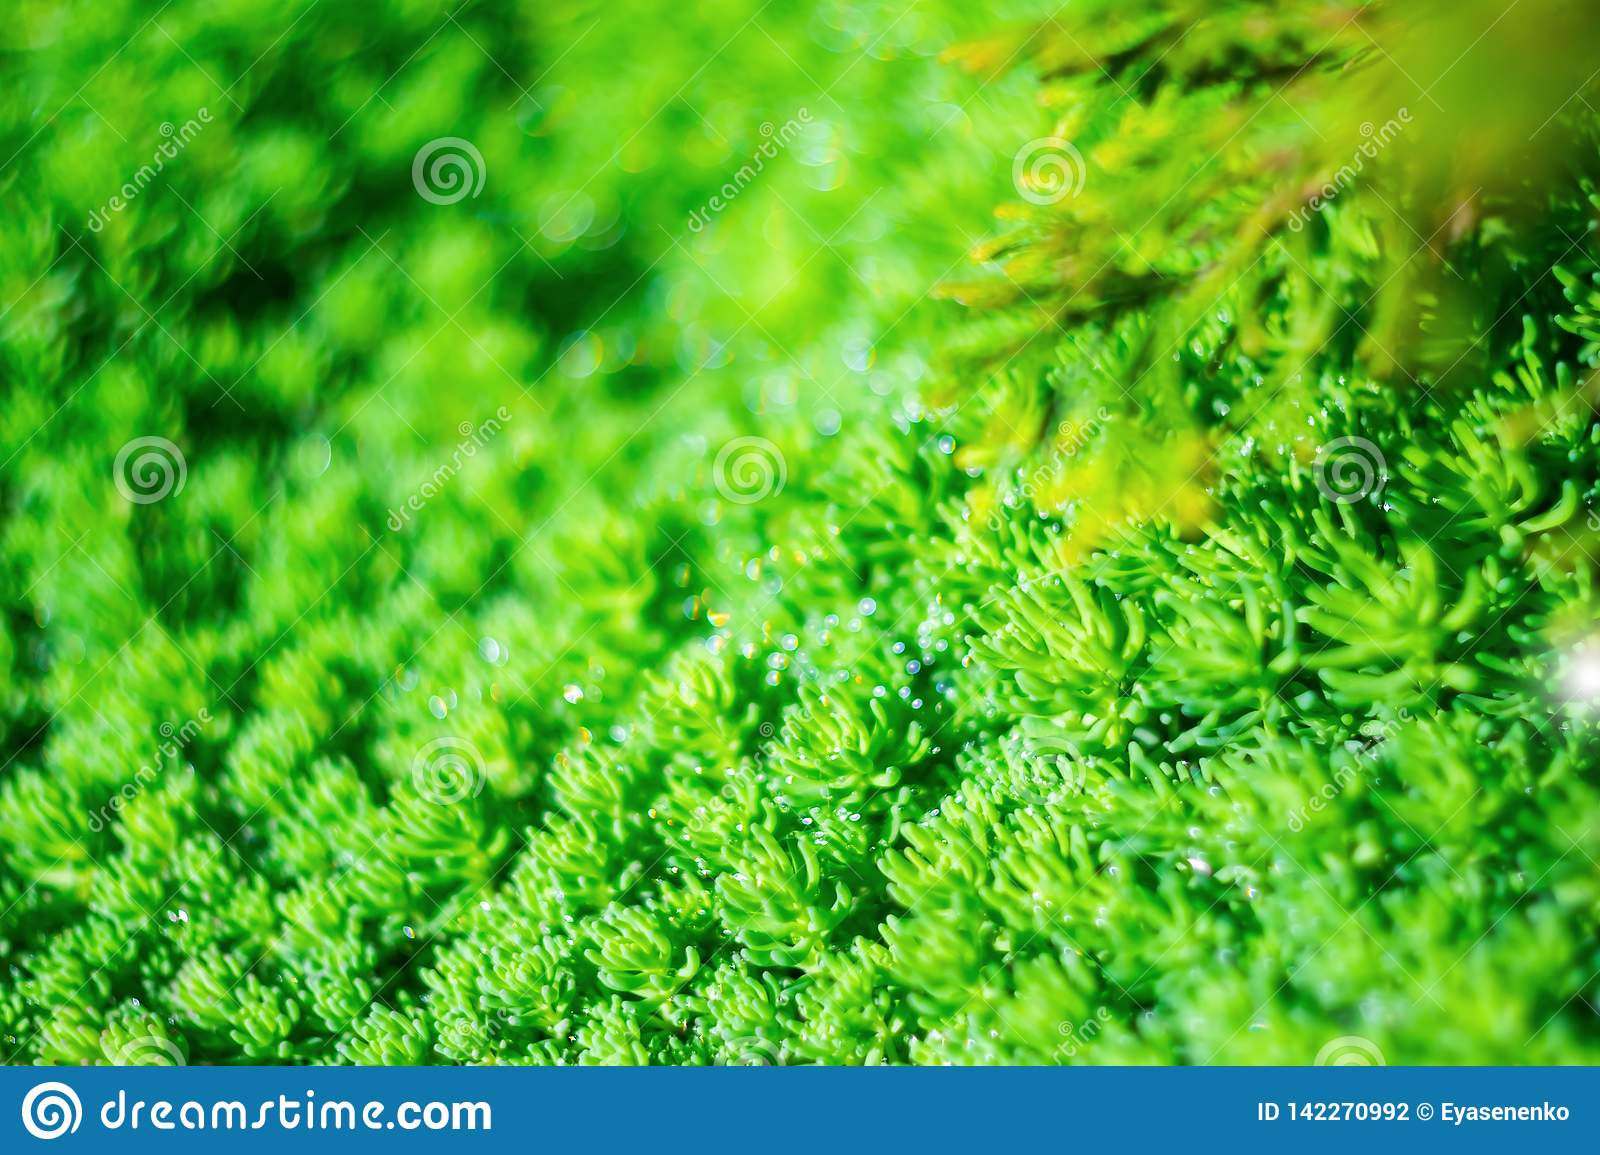 Bright Green Plant With A Beautiful Blur Effect Stock Photo Image Of Flora Freshness 142270992